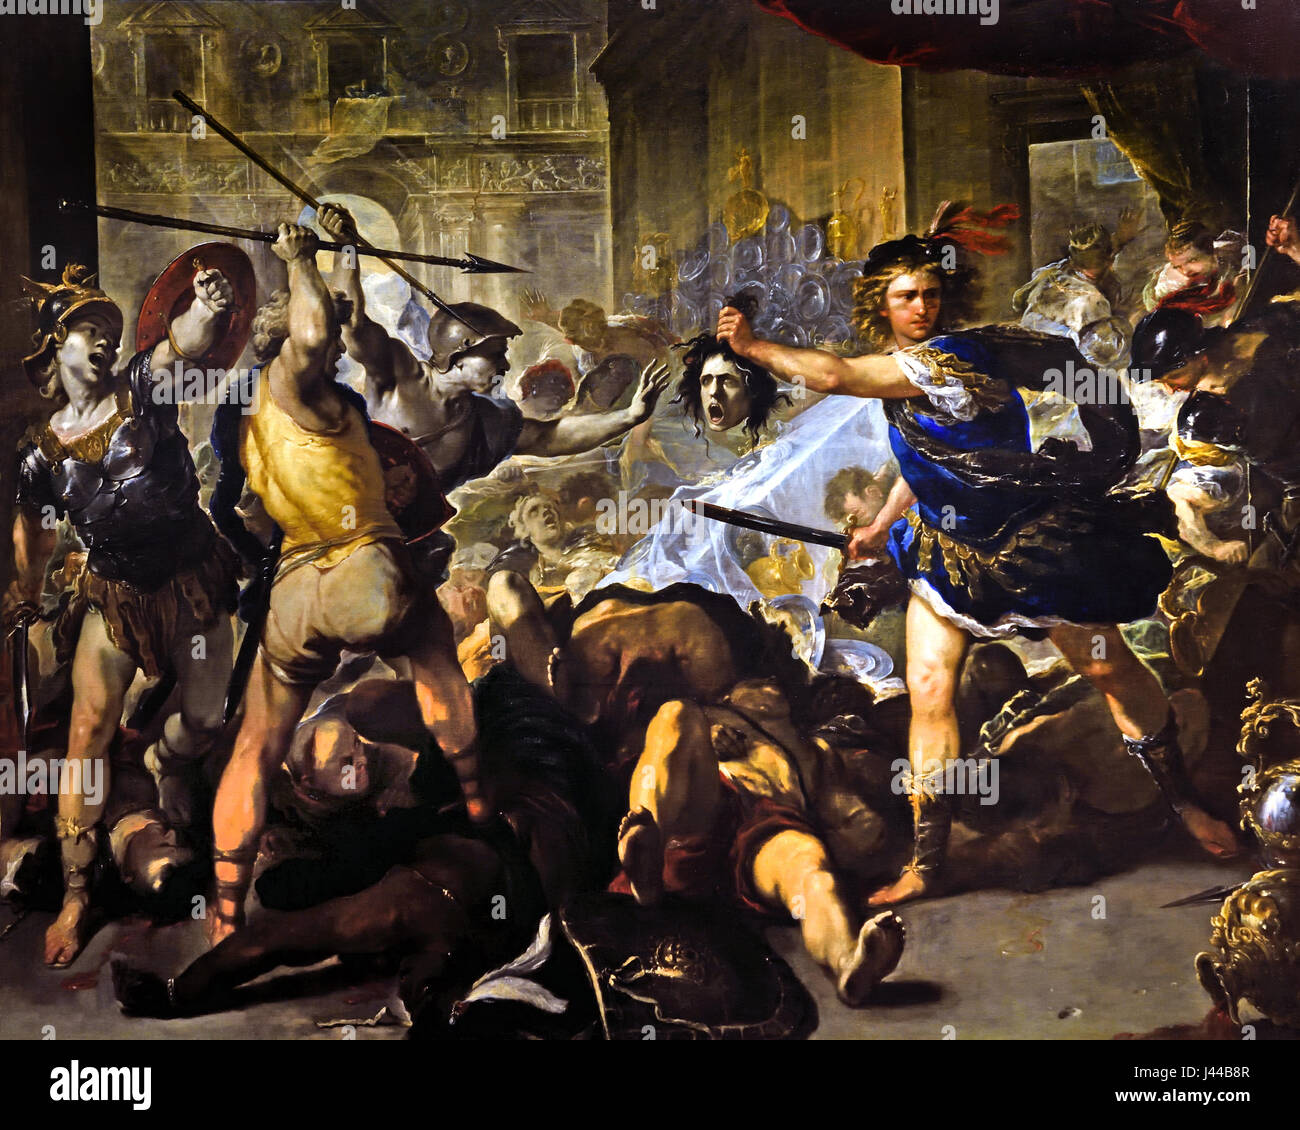 Perseus turning Phineas and his Followers to Stone 1680 Luca Giordano 1634 - 1705 Phineas, until Perseus rescued - Stock Image